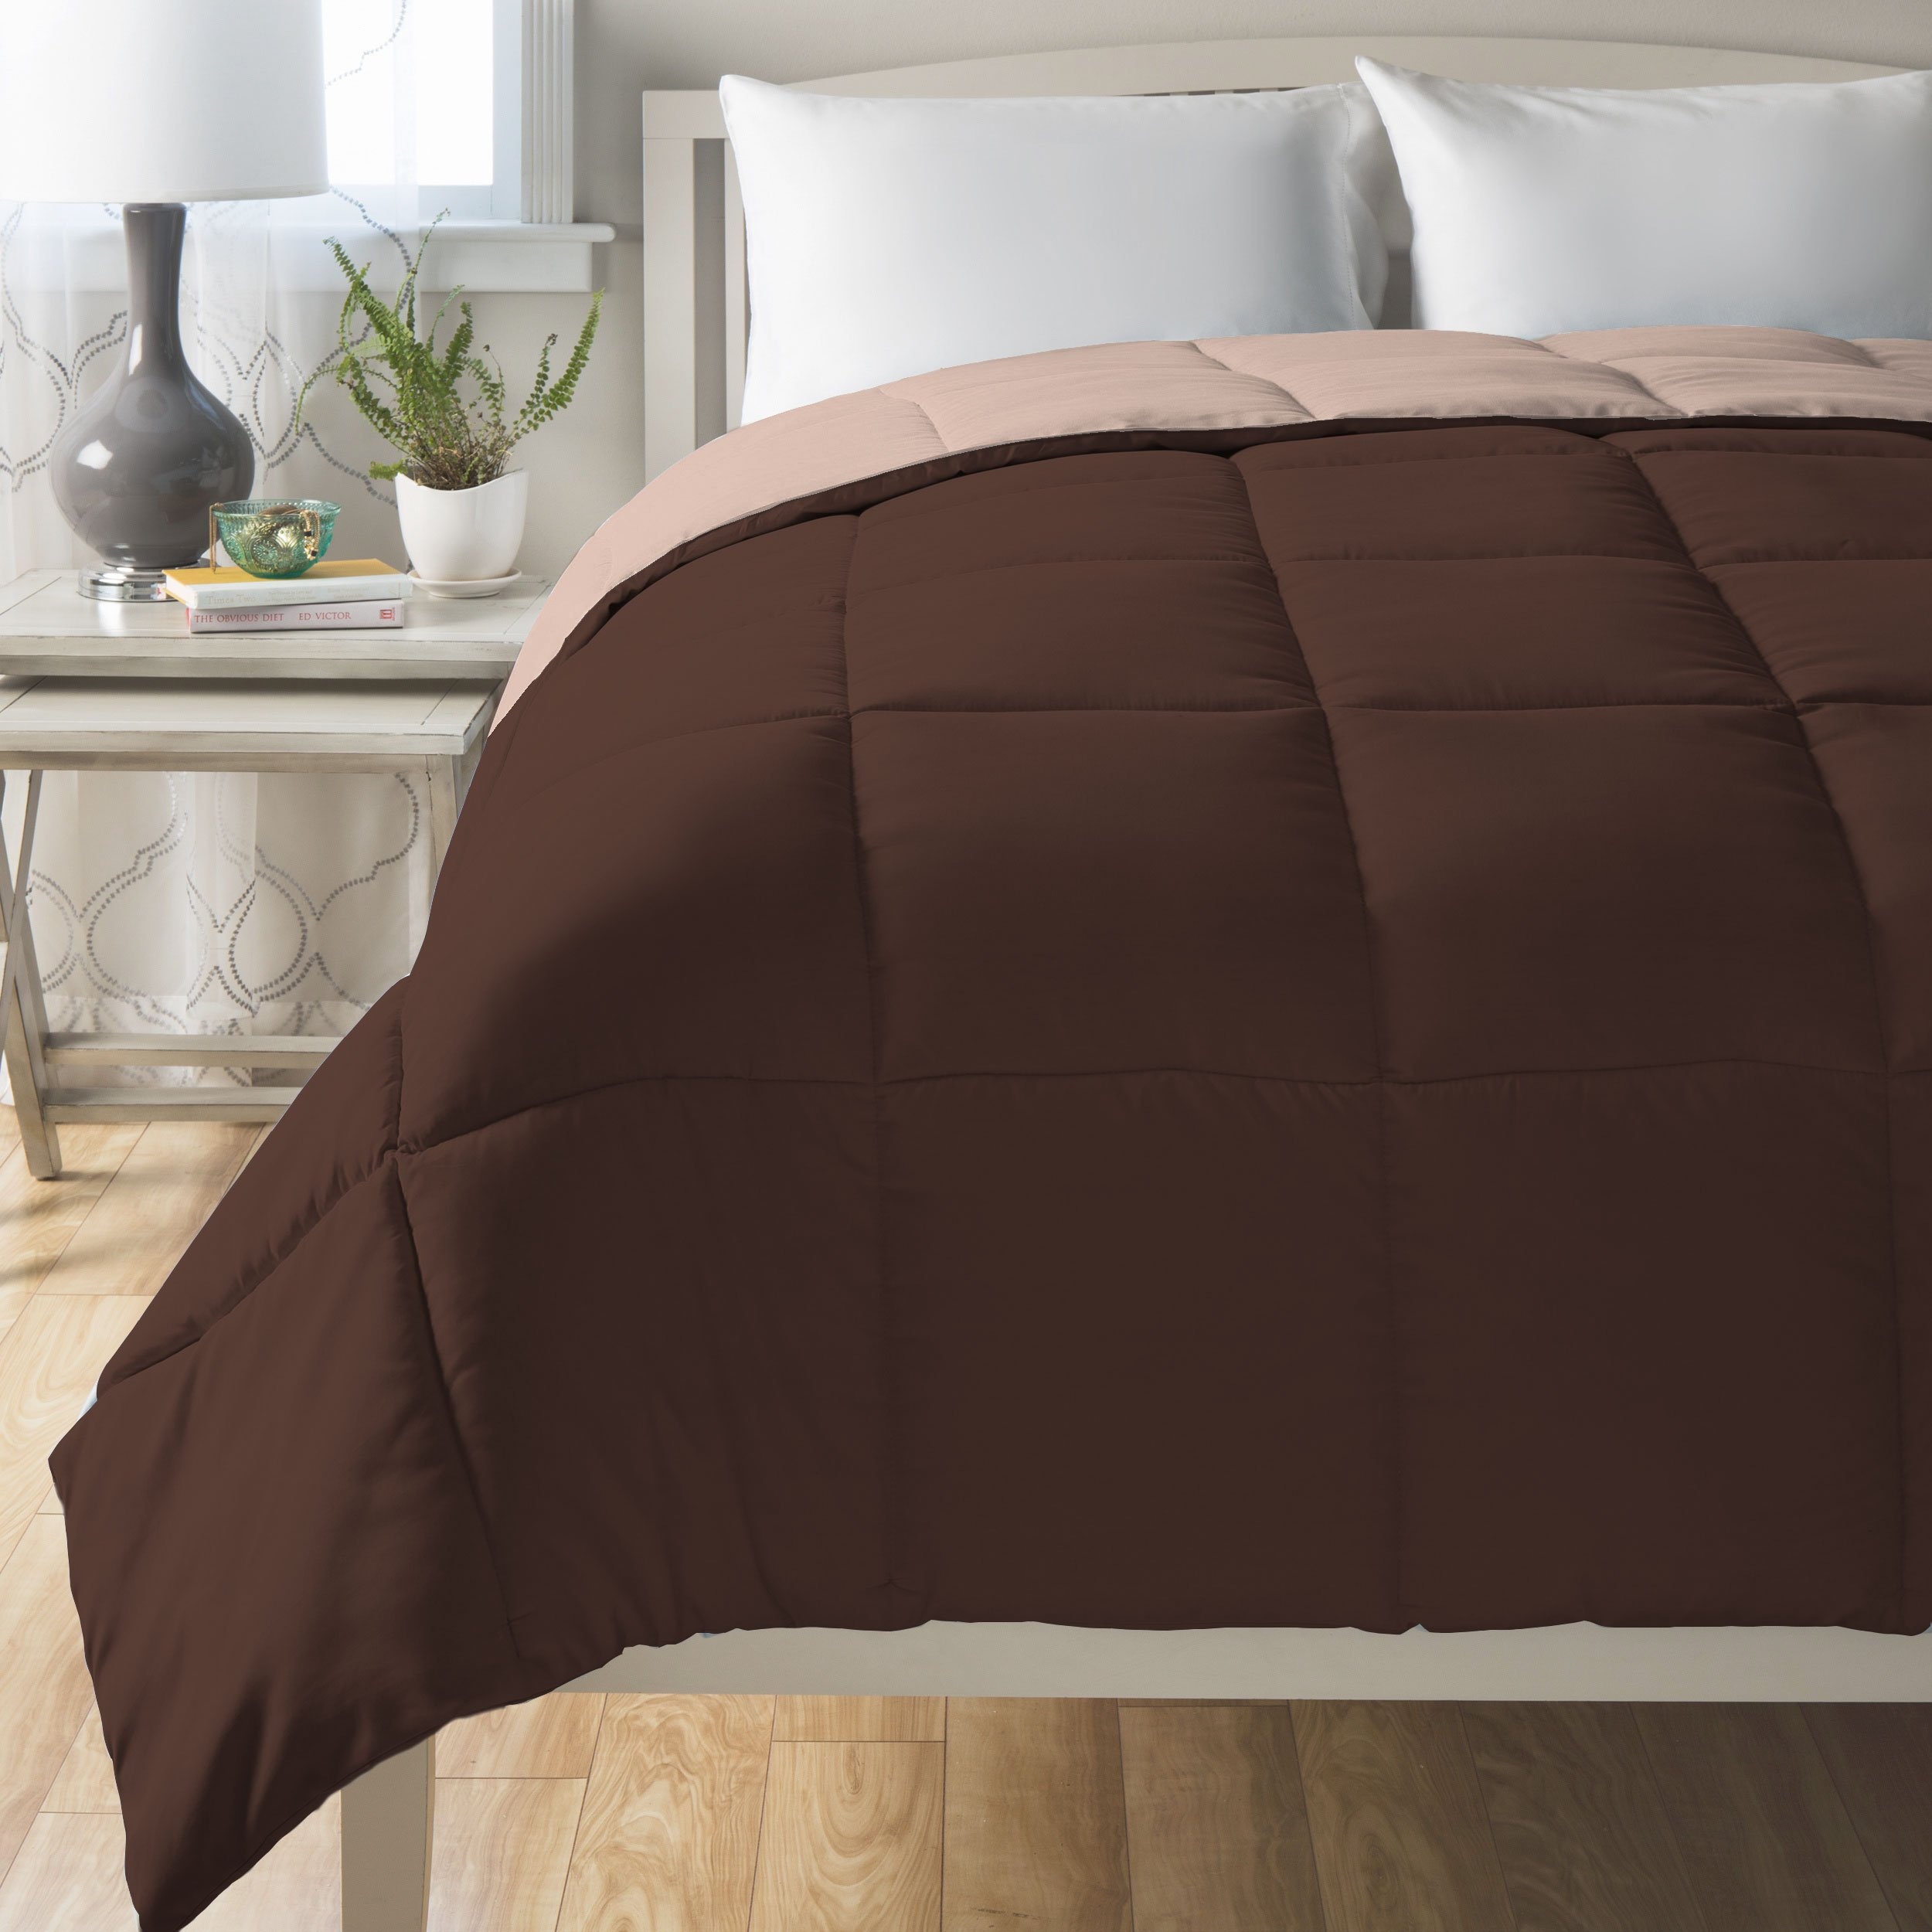 All Season Hypoallergenic King Comforter - Down Alternative Mocha-Taupe Reversible Duvet by Cheer Collection